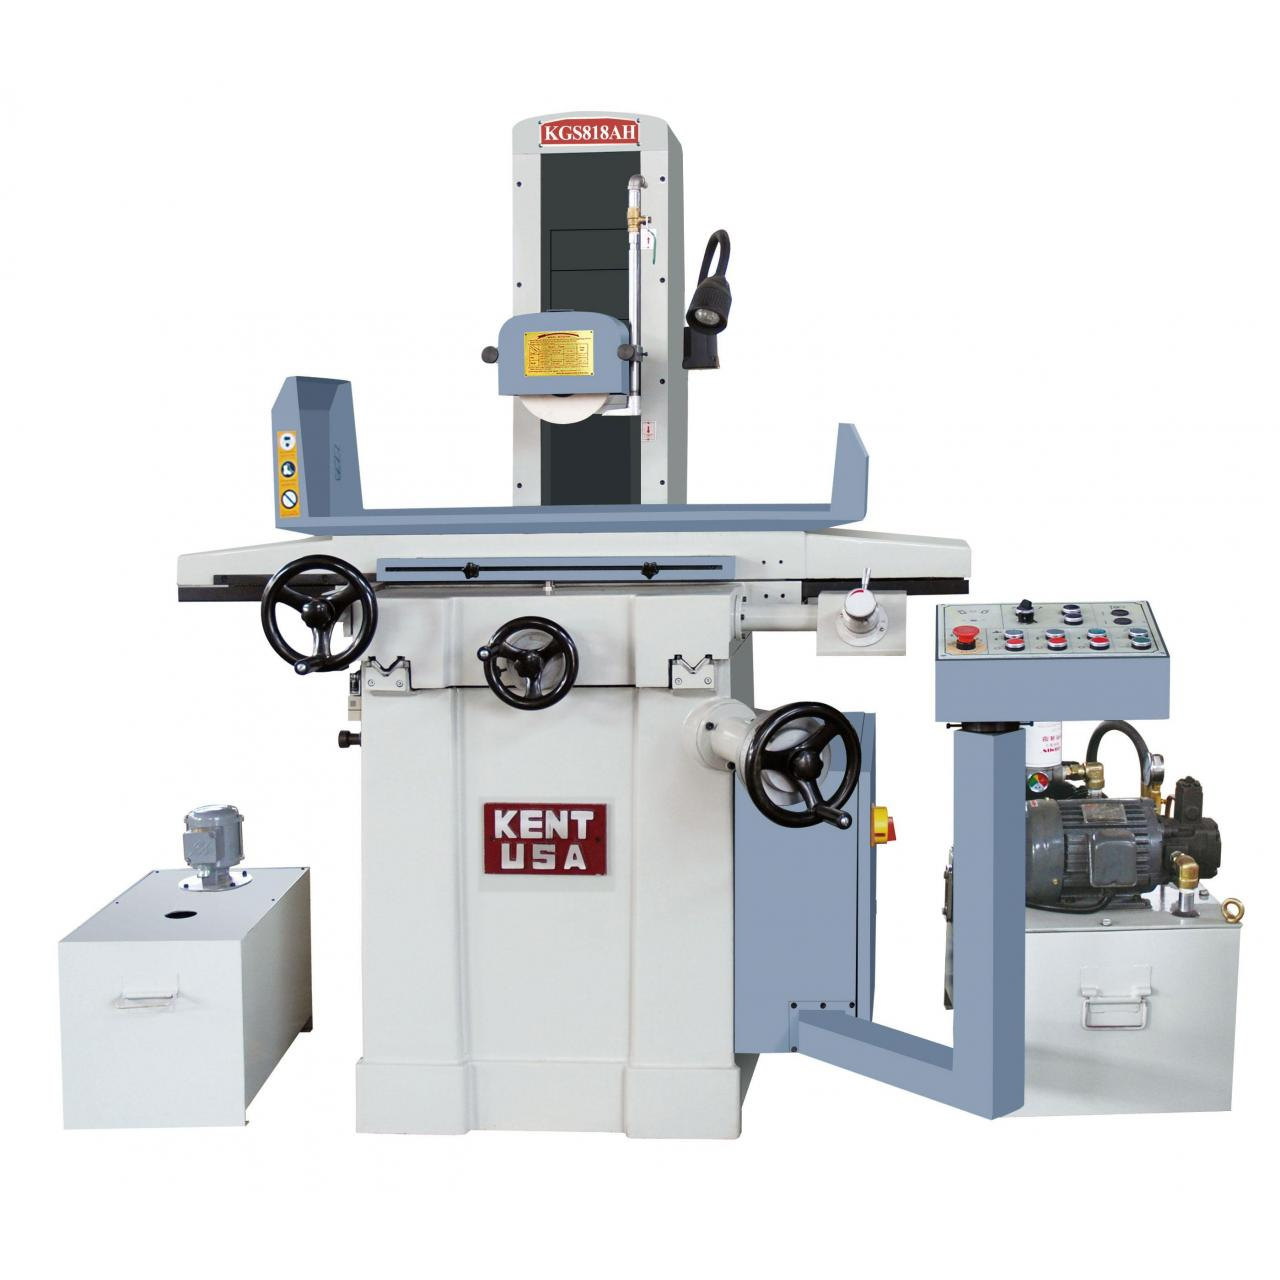 Buy cheap Kent KGS-818AH 2 Axis Automatic Surface Grinder product